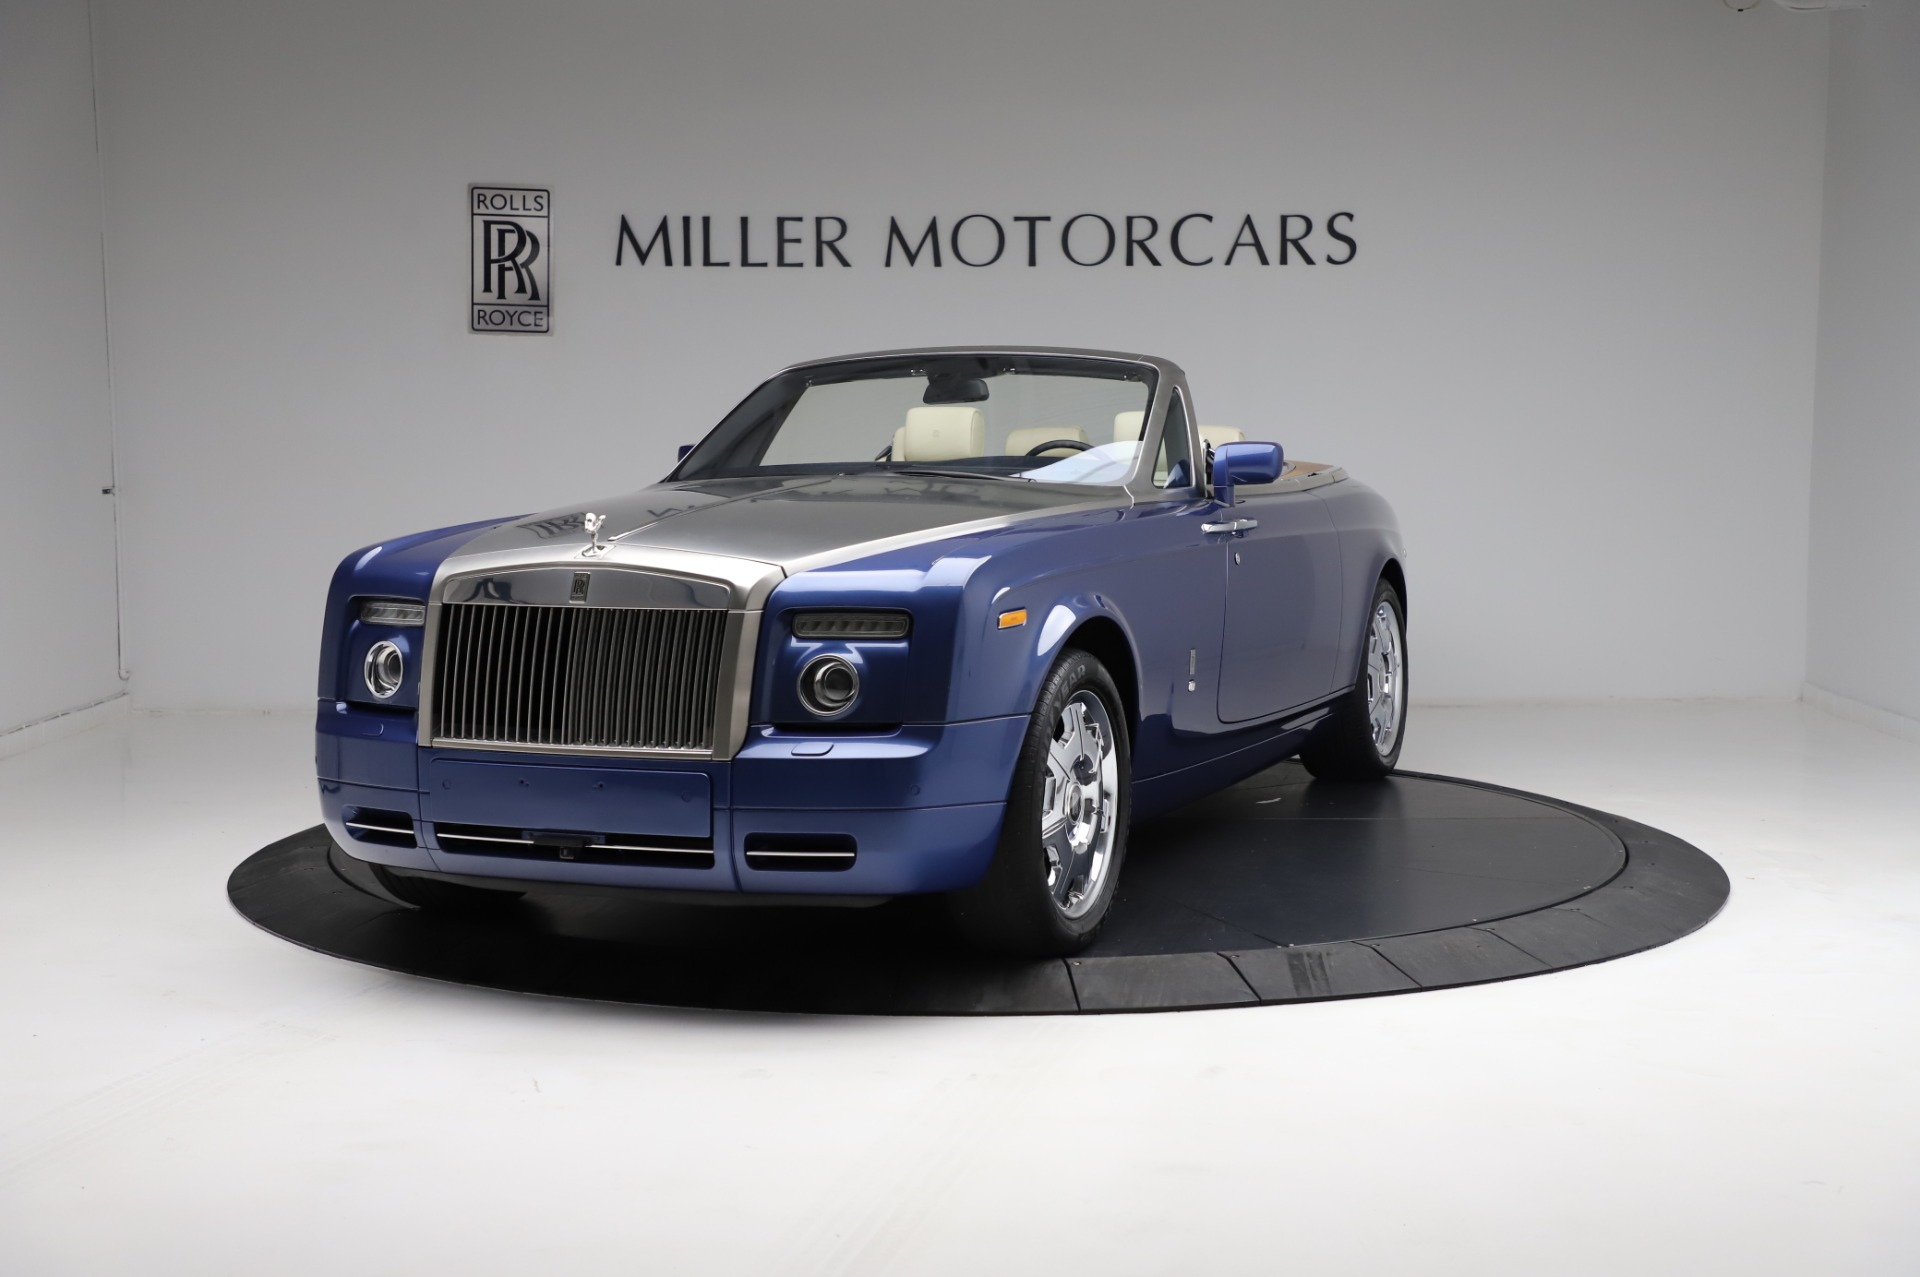 Used 2009 Rolls-Royce Phantom Drophead Coupe for sale $219,900 at Bugatti of Greenwich in Greenwich CT 06830 1